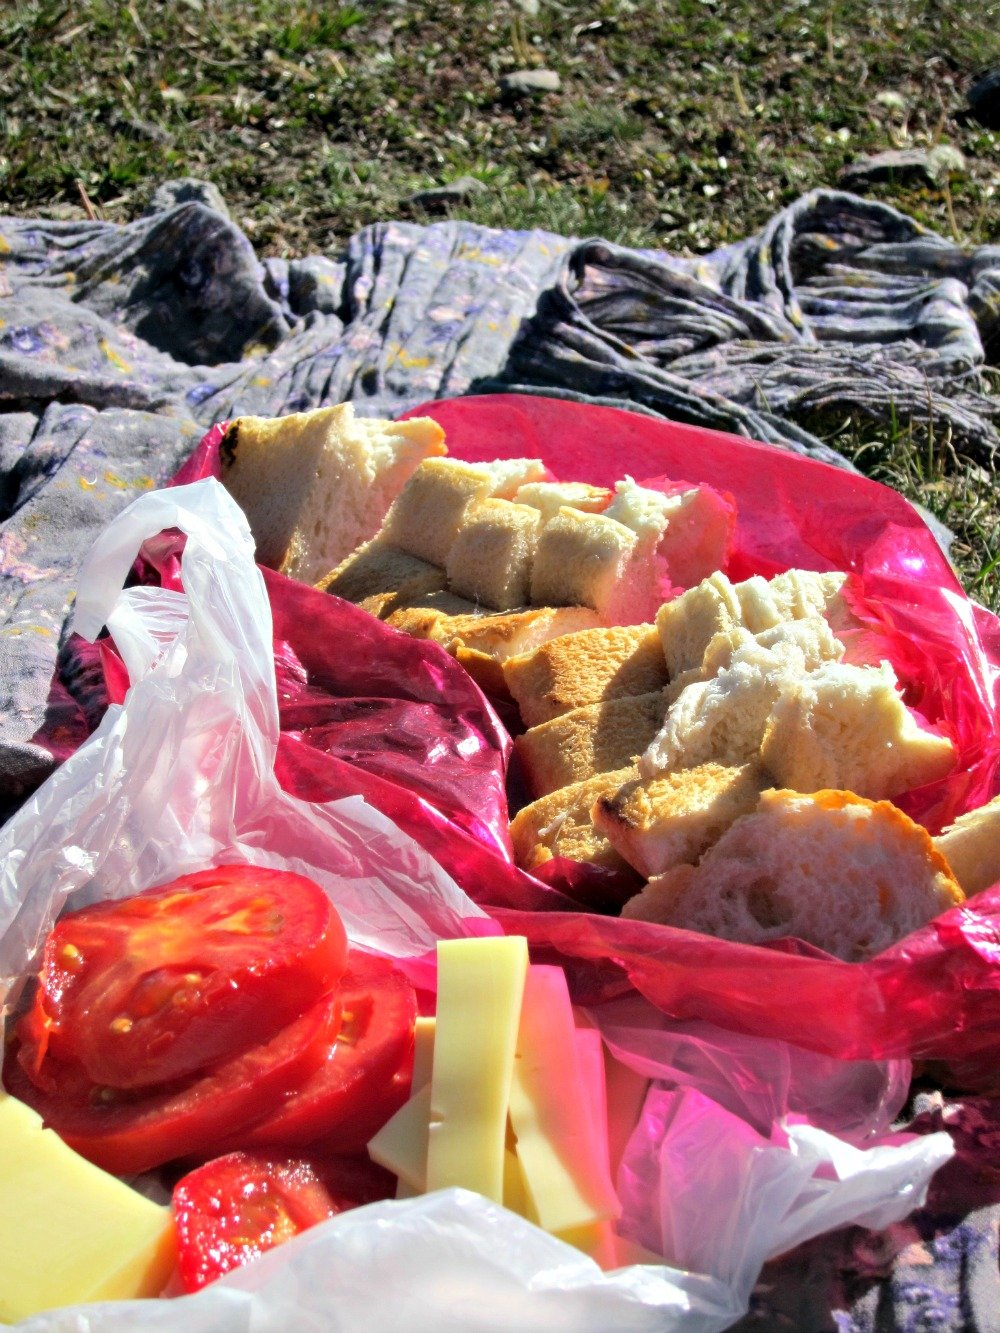 Quality Picnic Ingredients